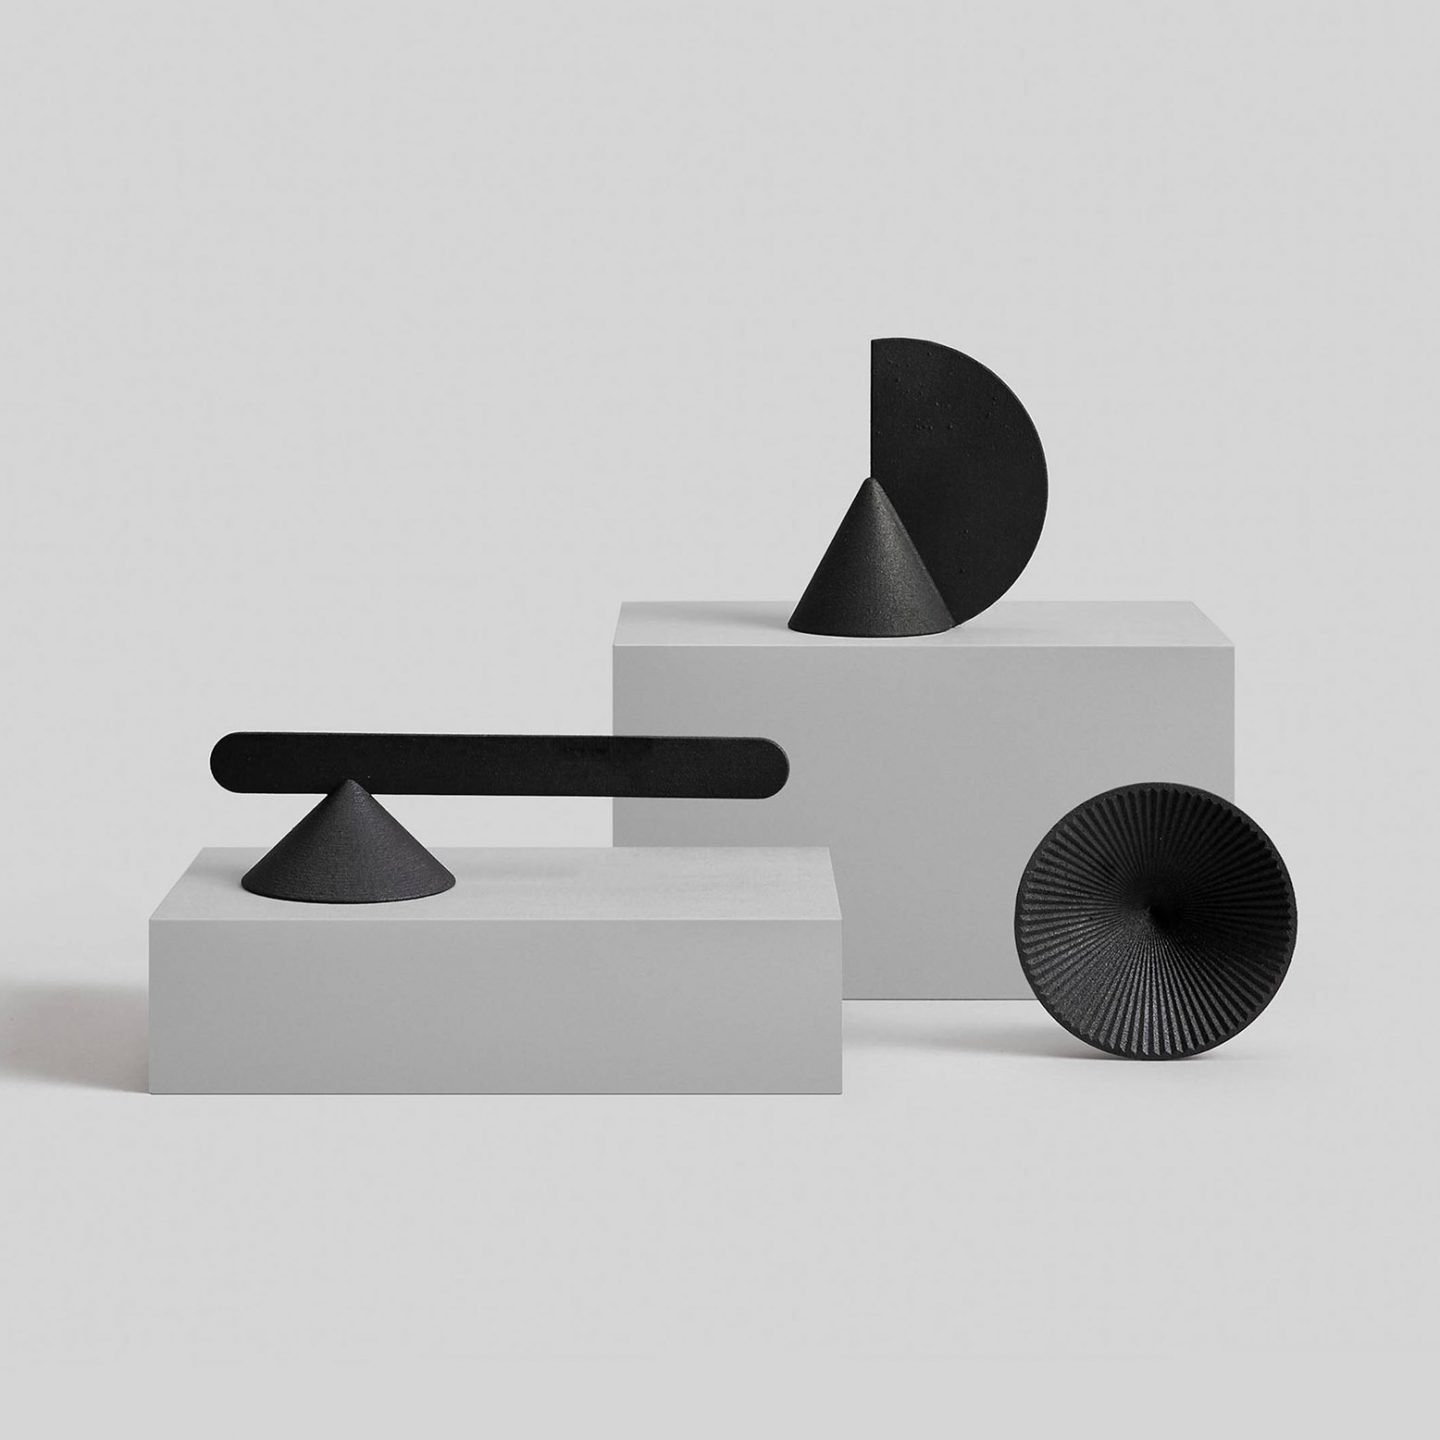 iGNANT_Design_Geometric_Candle_Snuffers_OTHR_h